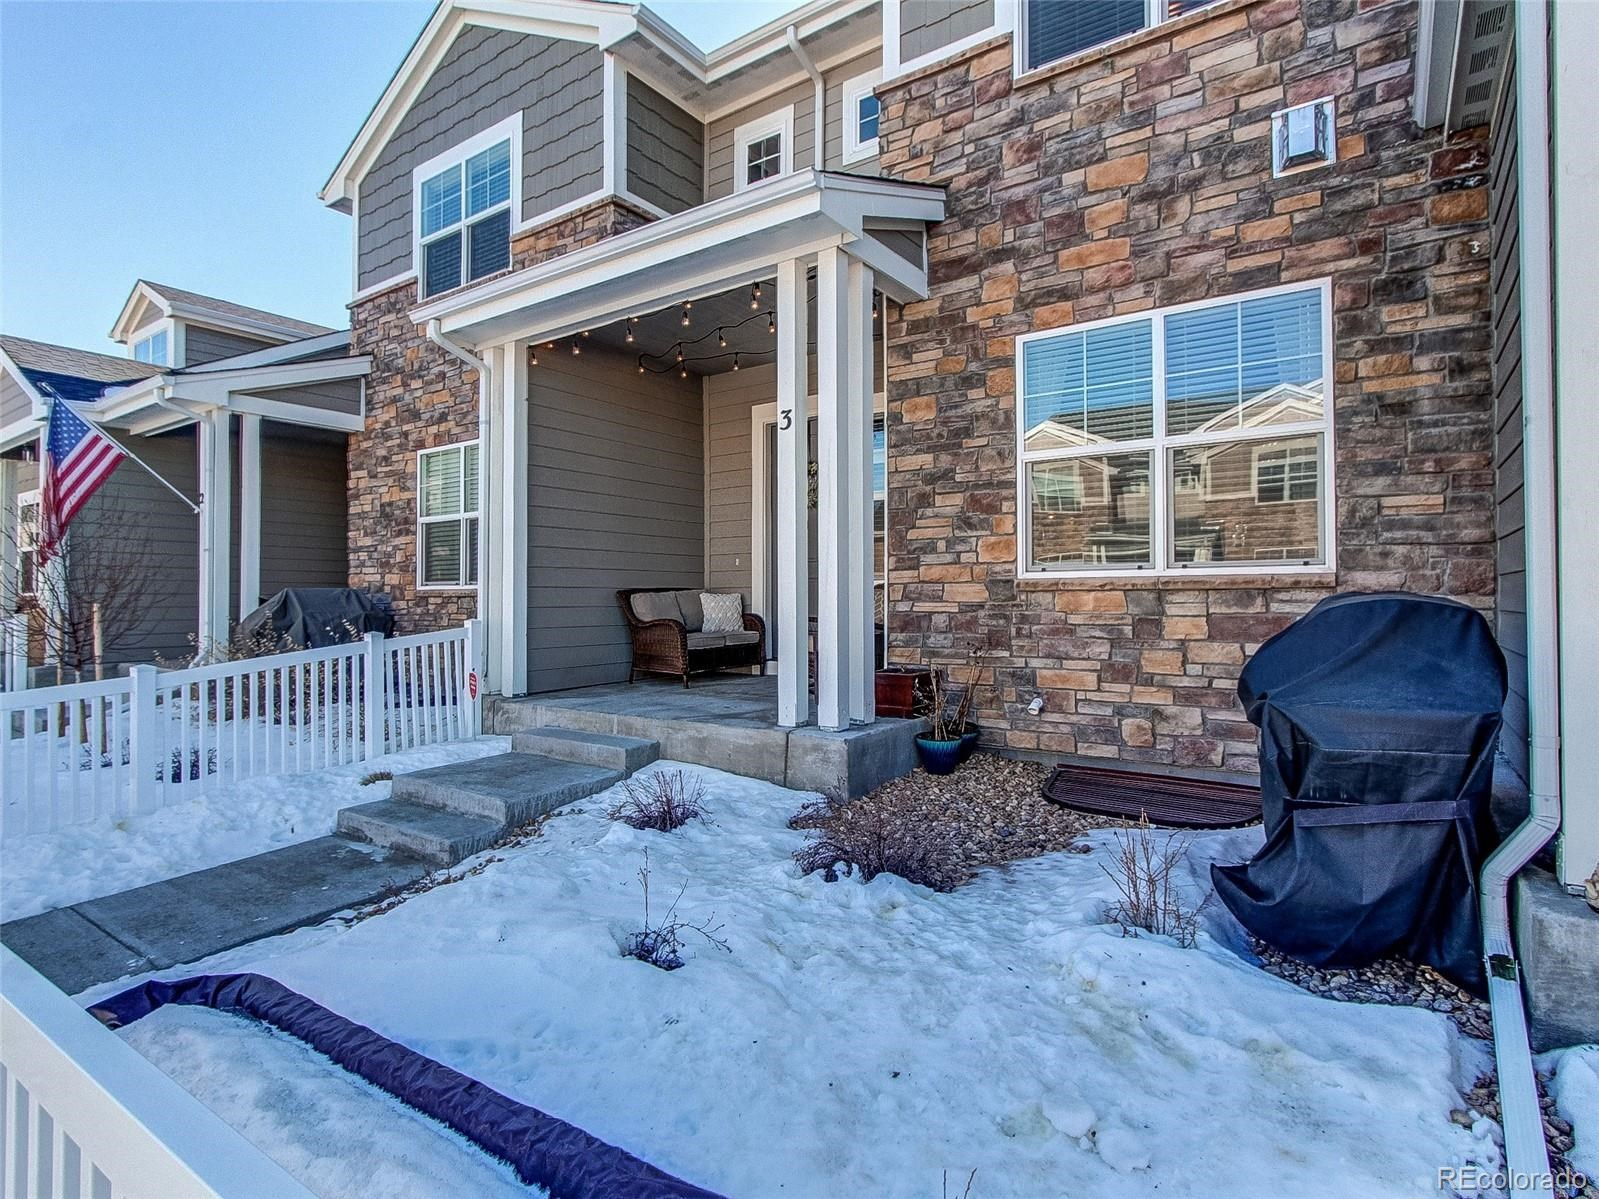 MLS# 6859780 - 2157 Montauk Lane #3, Windsor, CO 80550